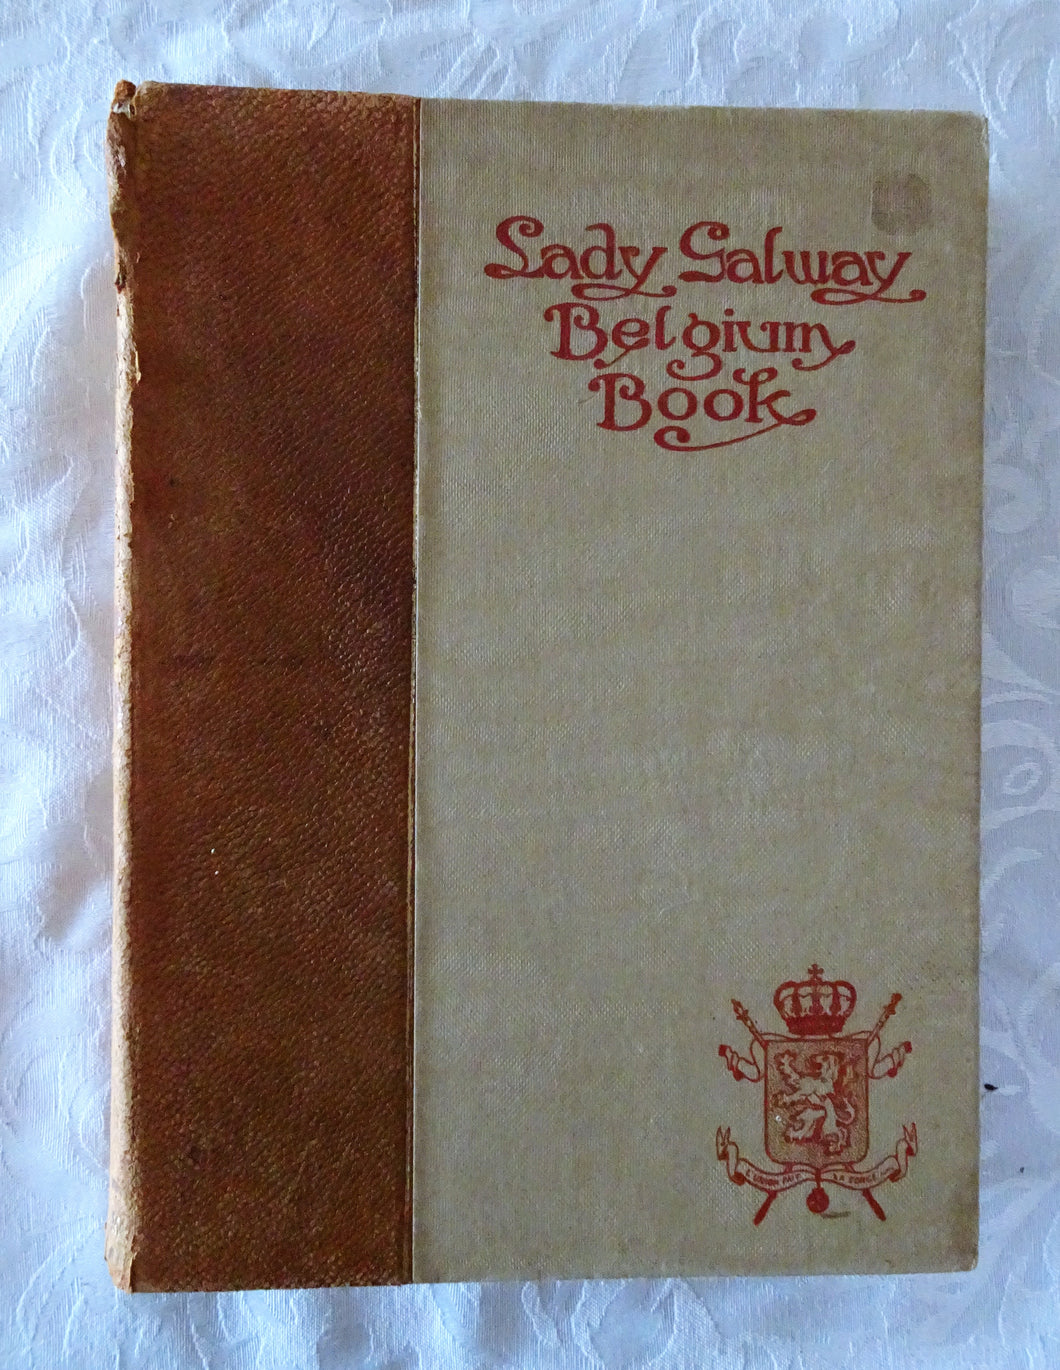 Lady Galway Belgium Book